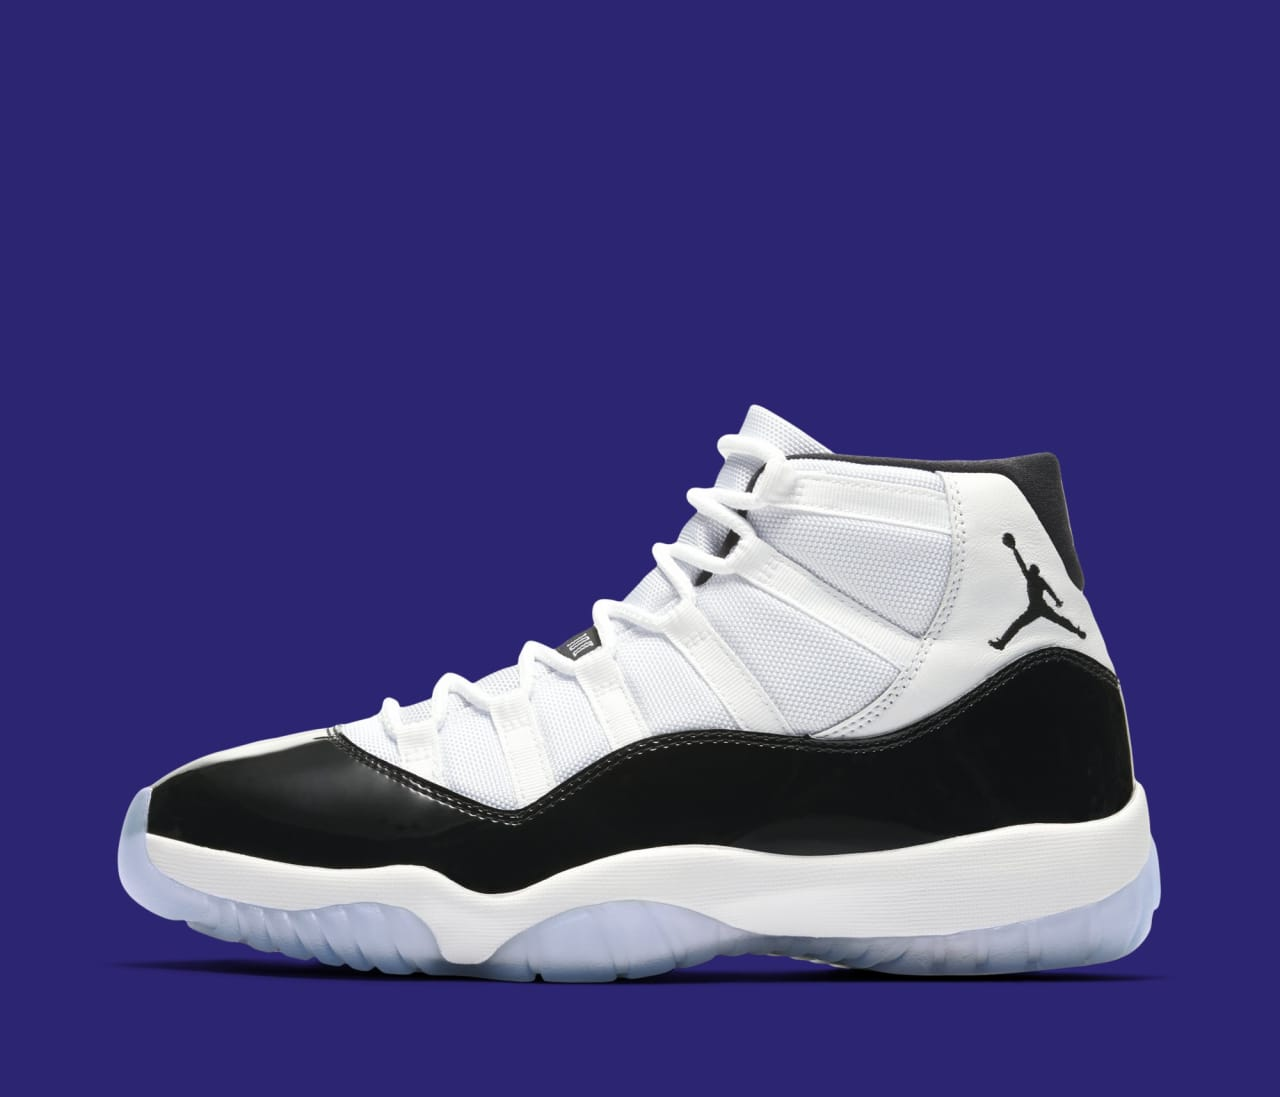 0cc7fd54bd1 Concord' Air Jordan 11s Will Be Easy to Get and That's a Good Thing ...